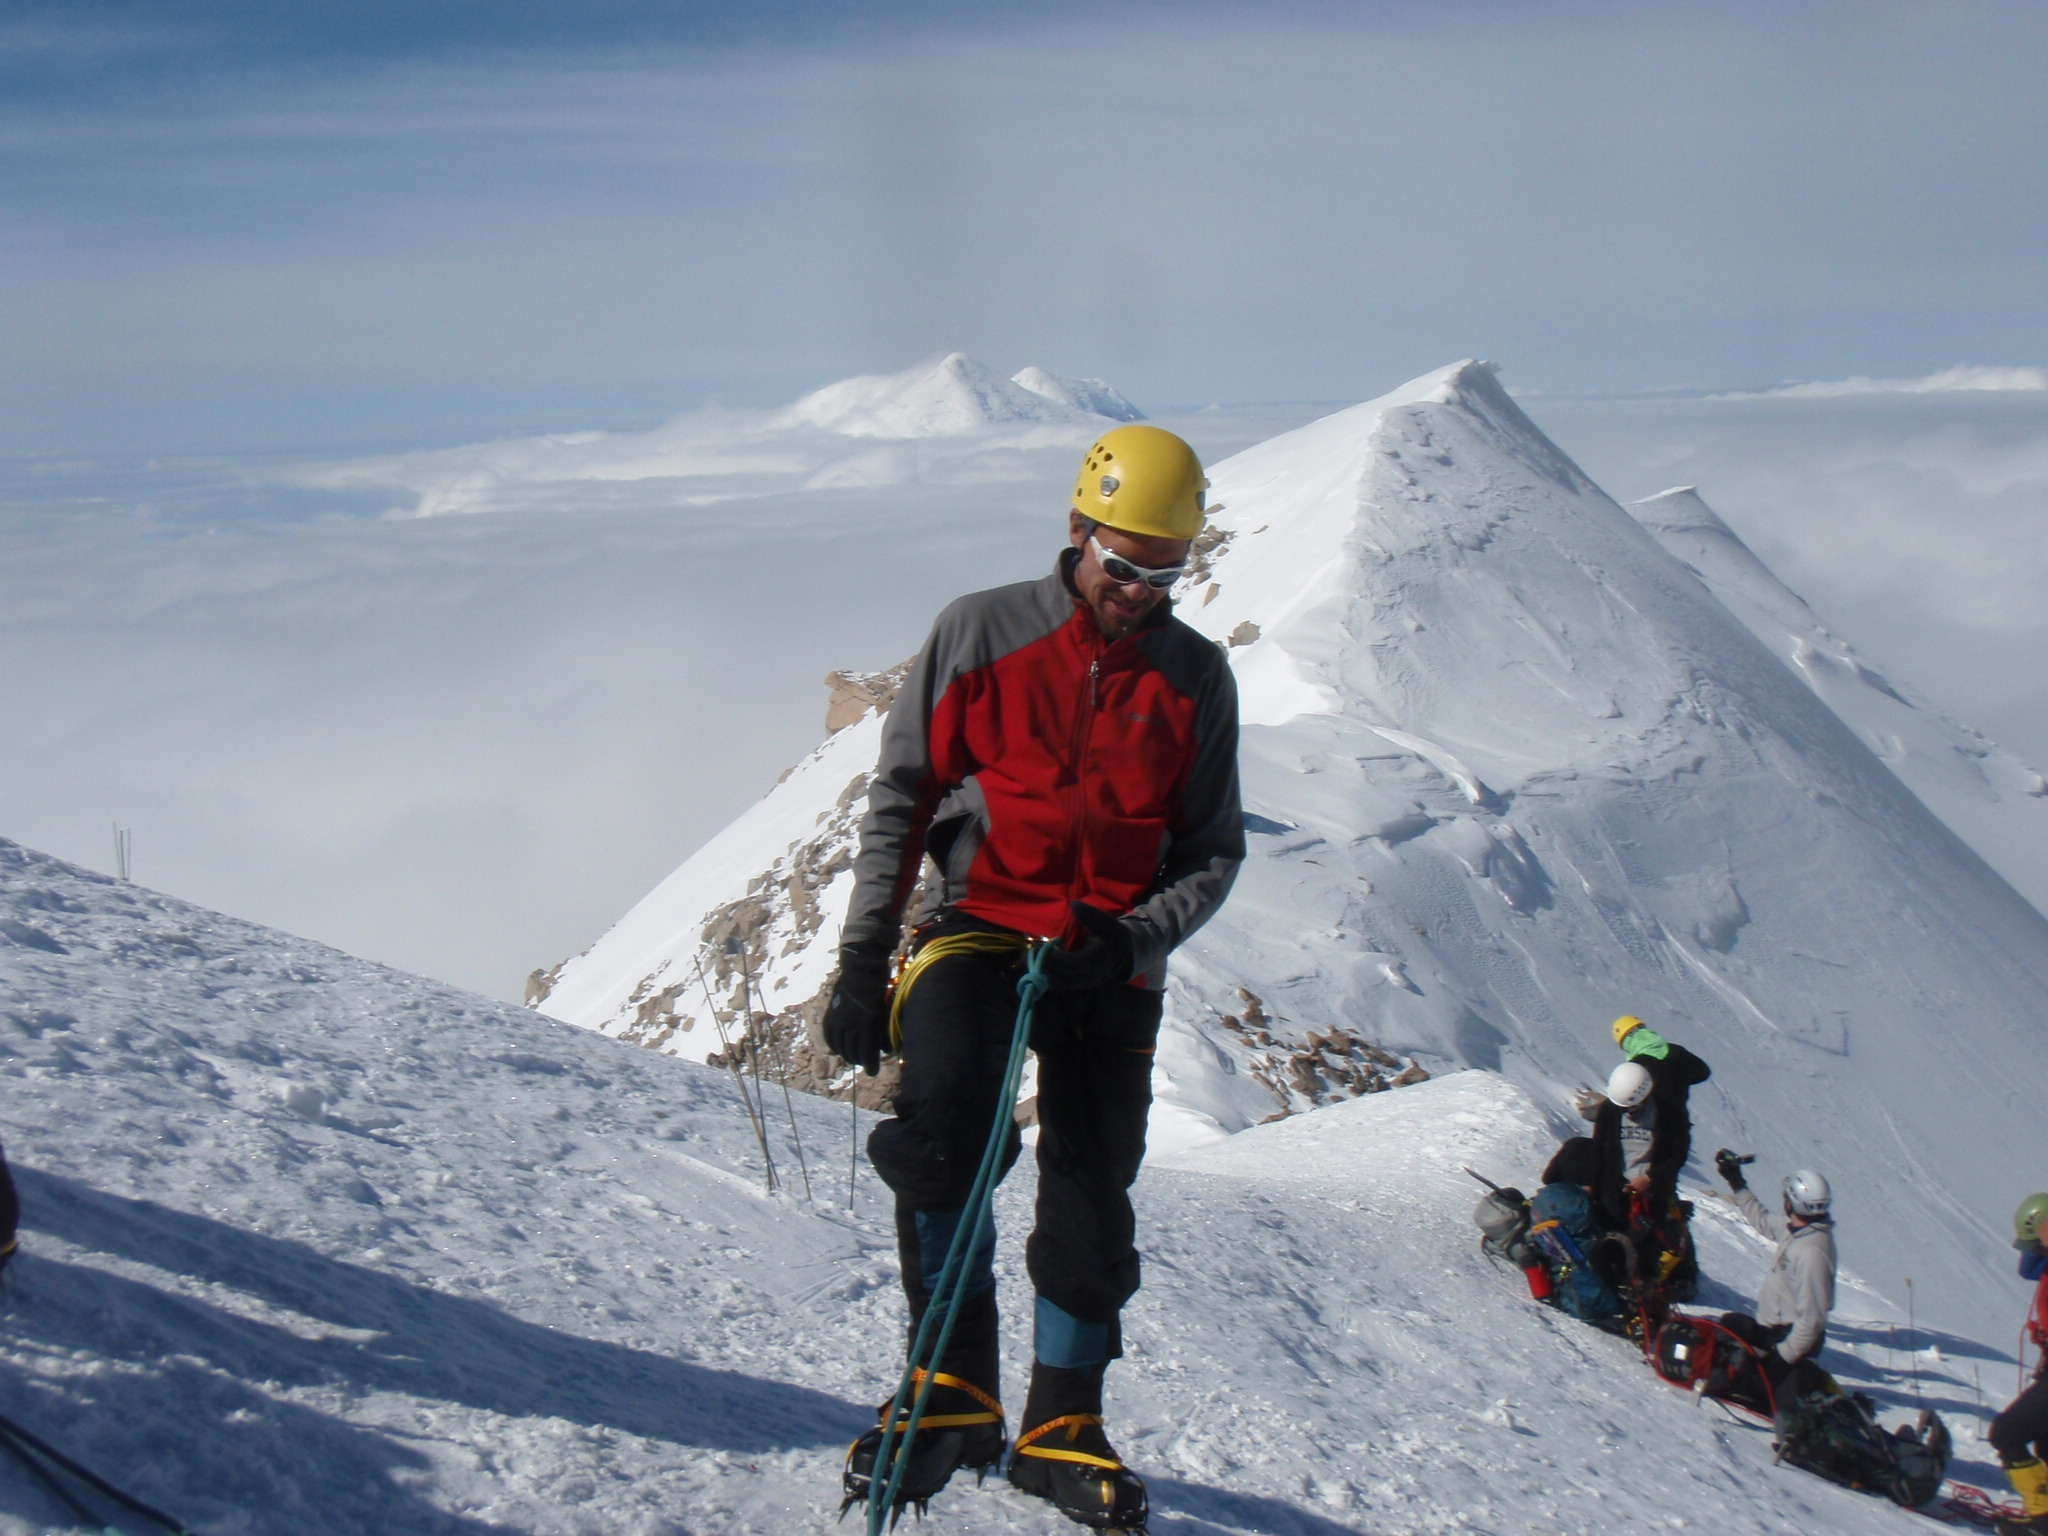 At Cache Above Fixed Ropes (4950m)